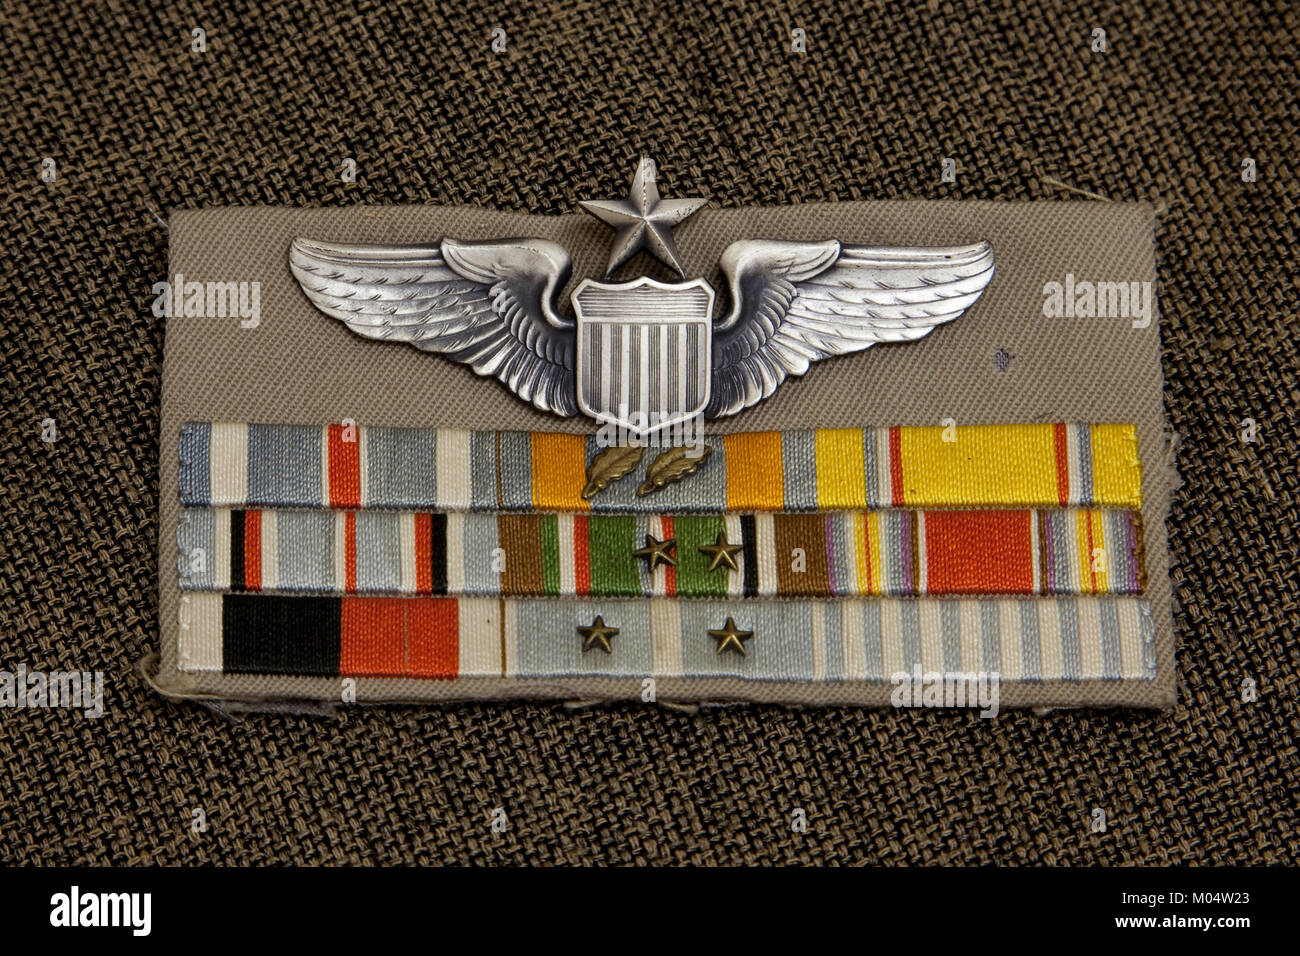 Medal Grouping from Tuskegee Airmen - Stock Image